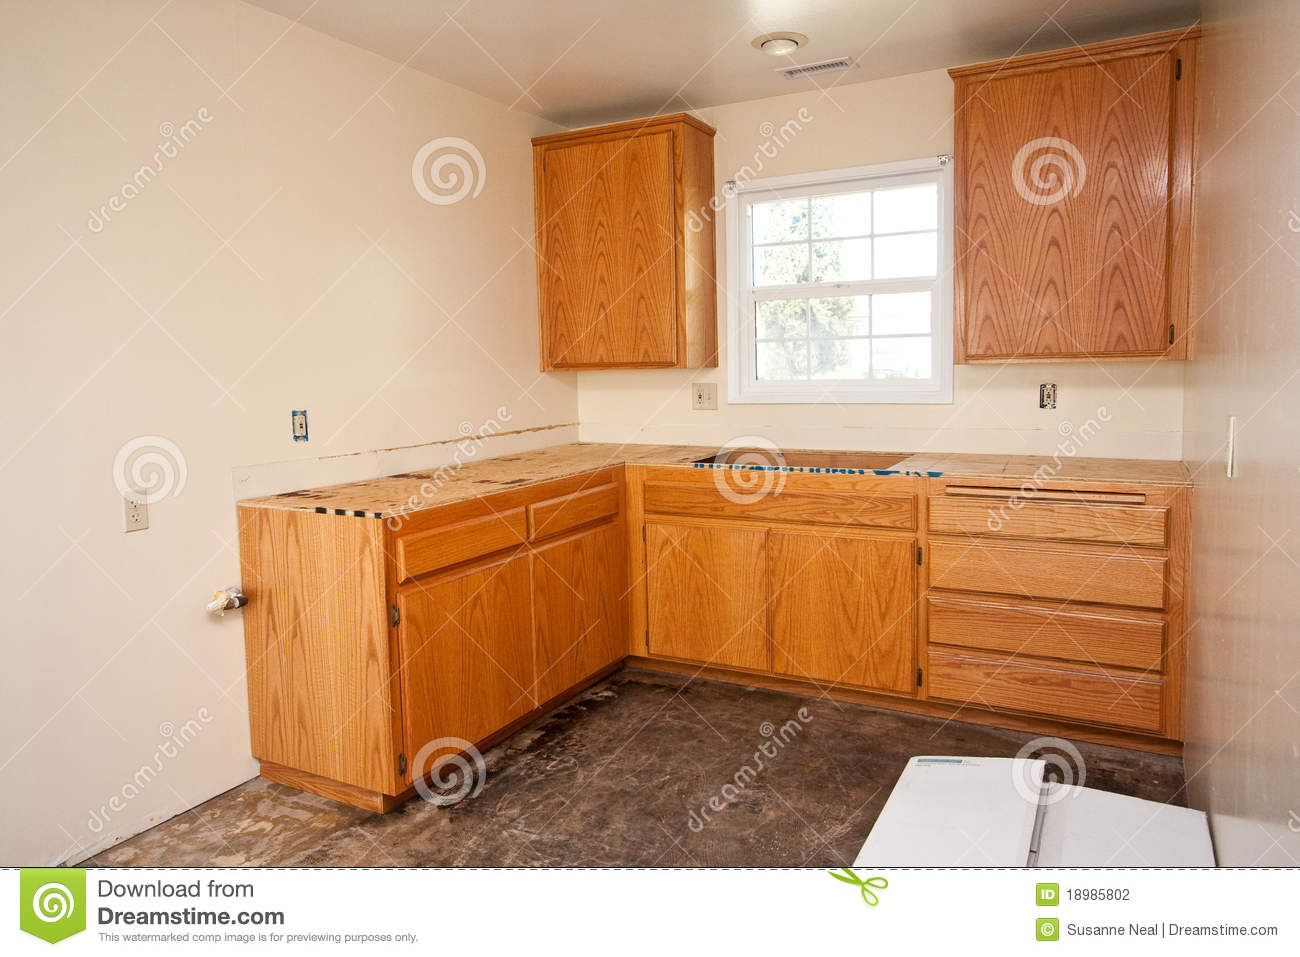 stock photography kitchen cabinets countertop image kitchen cabinets and countertops Kitchen cabinets without countertop